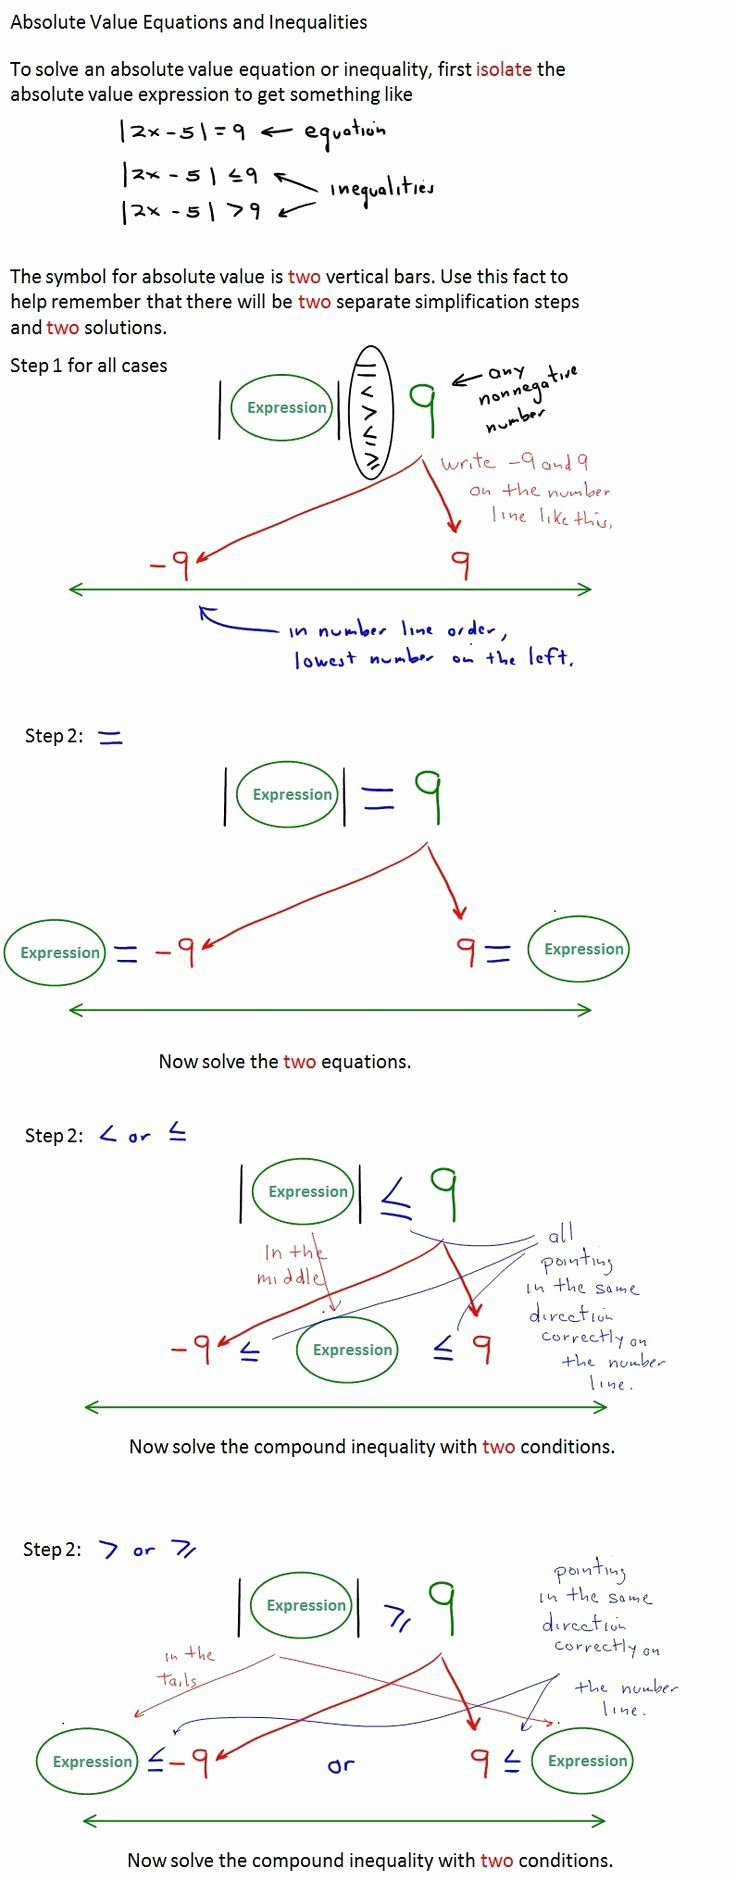 Absolute Value Inequalities Worksheet Best Of 17 Best Images About solving Equations On Pinterest